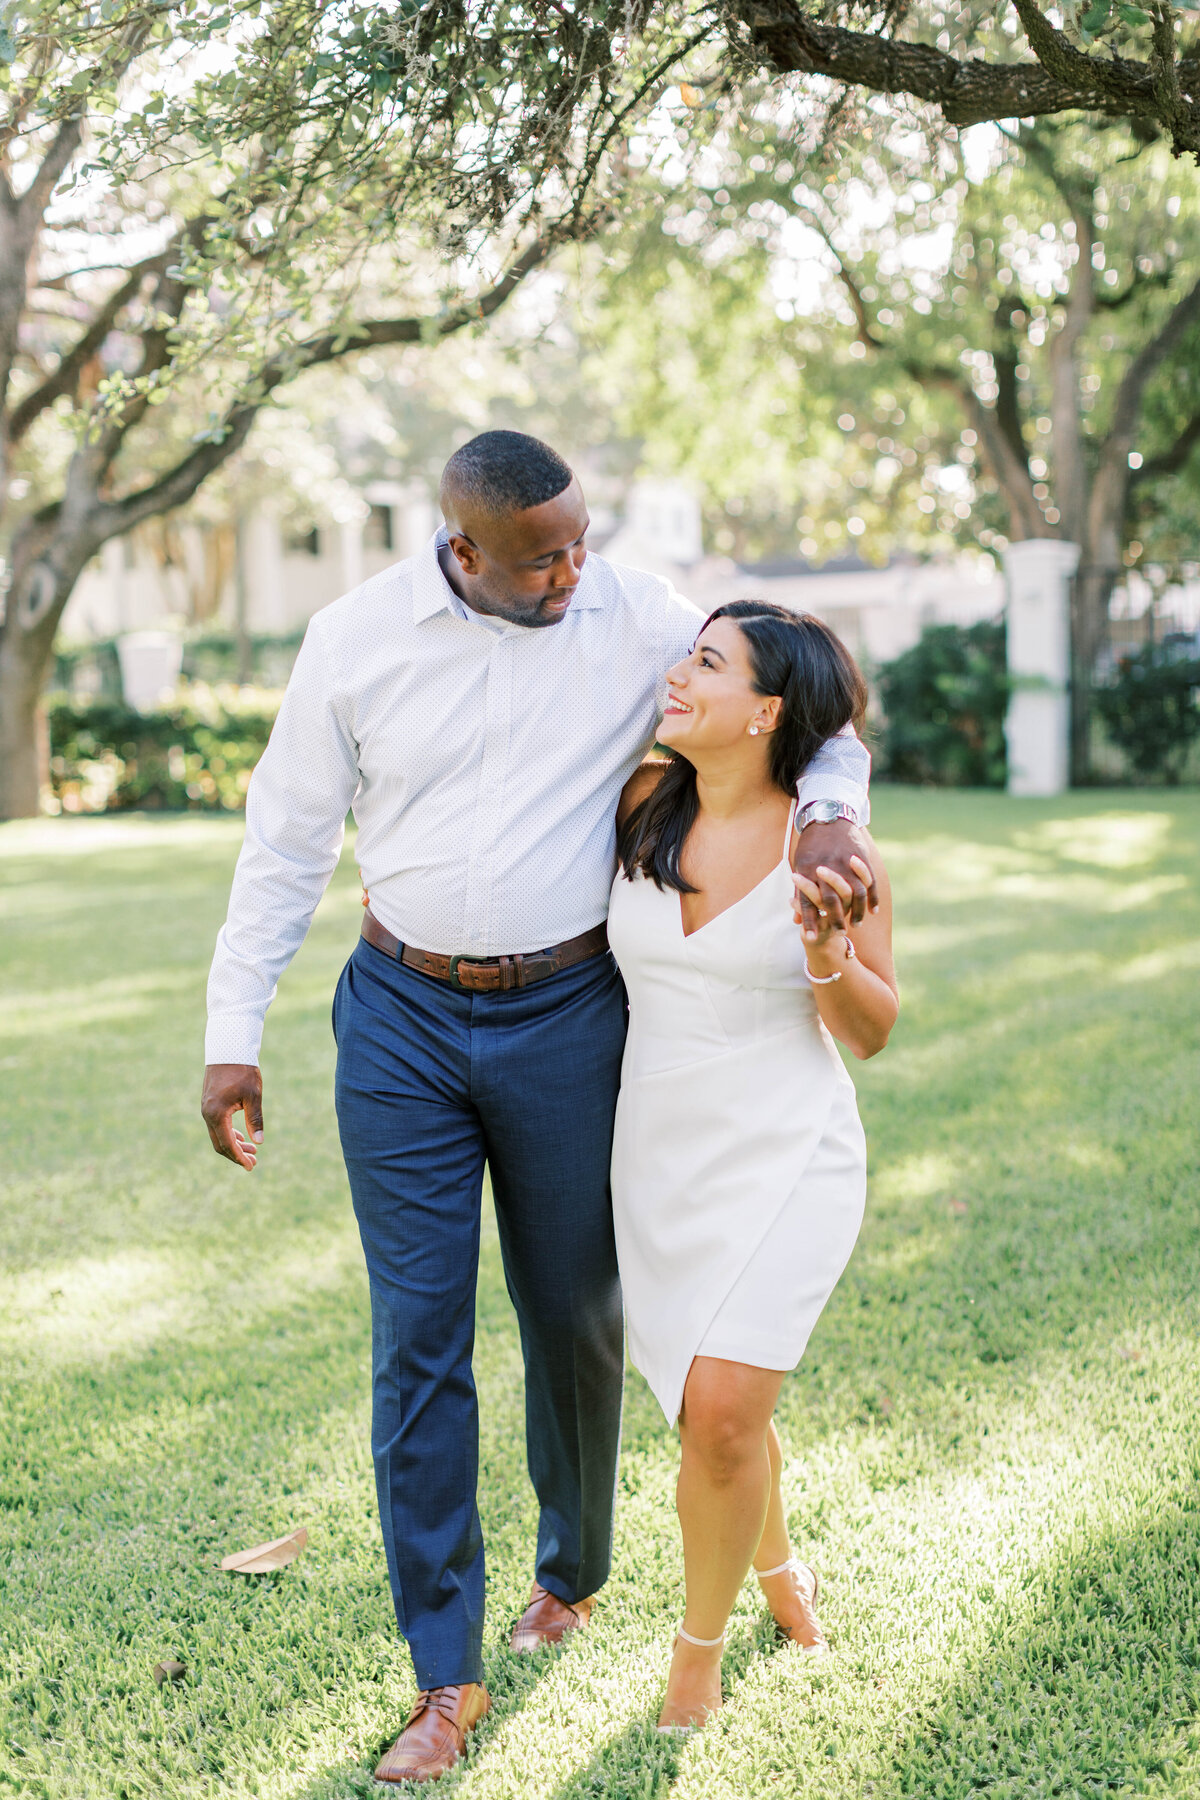 Best Wedding Photographer in Victoria, Texas: Jenny King | Fine art and luxury destination wedding photographer located in south Texas.